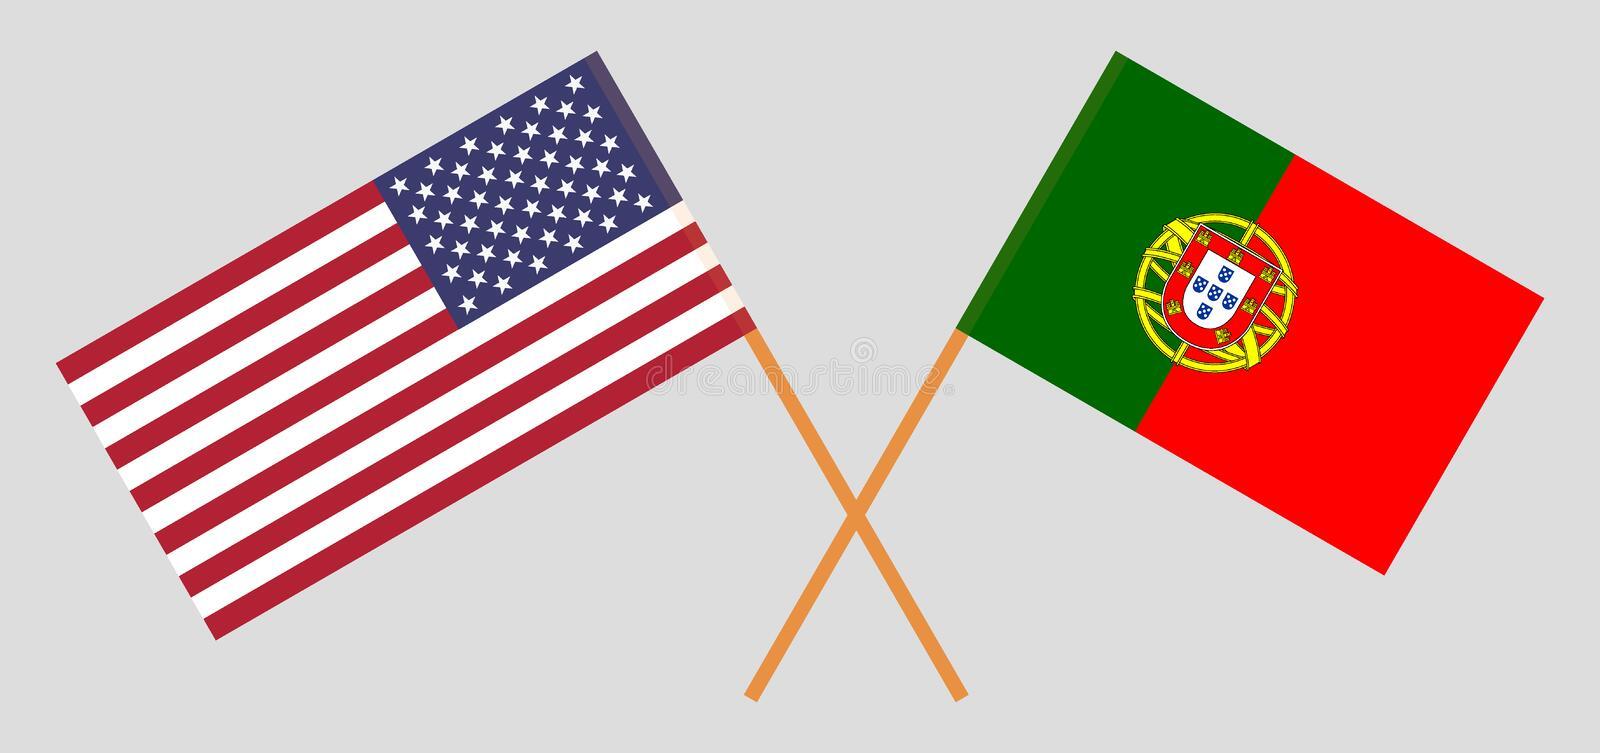 USA and Portugal. The United States of America and Portuguese flags. Official colors. Correct proportion. Vector royalty free illustration